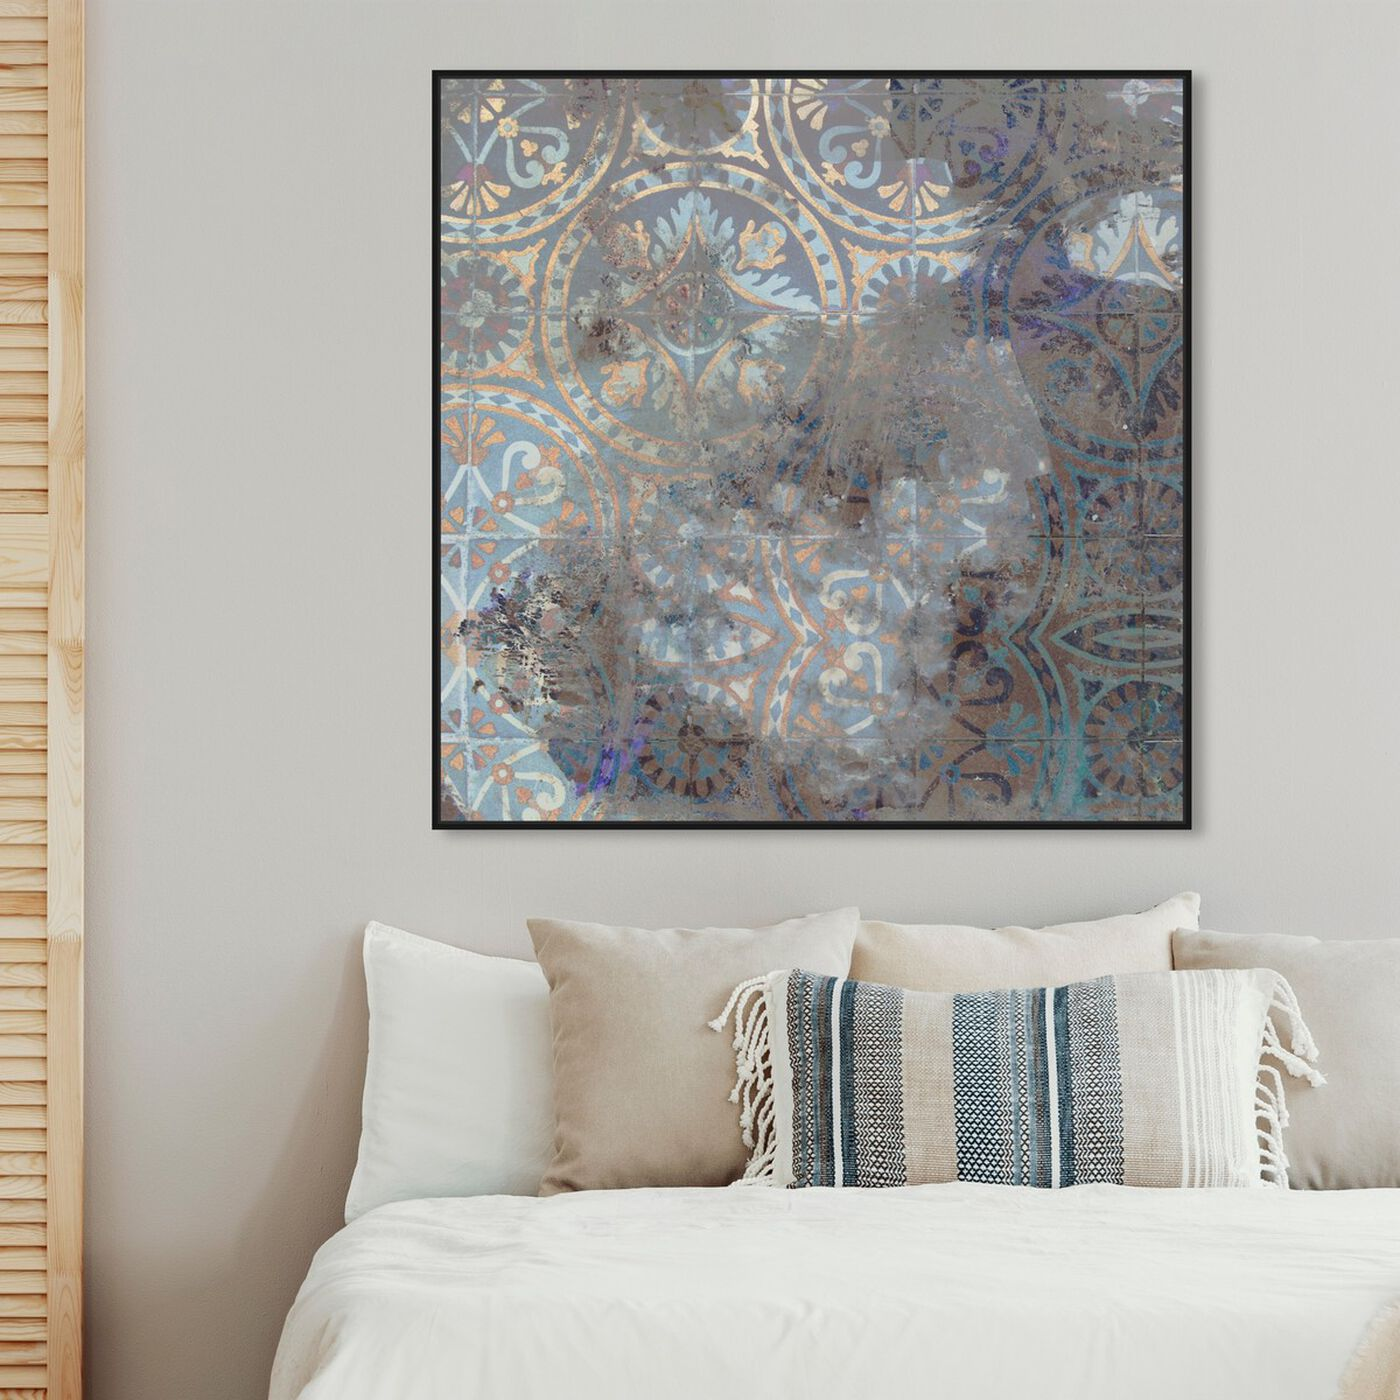 Hanging view of Rusted Geometrica featuring abstract and patterns art.